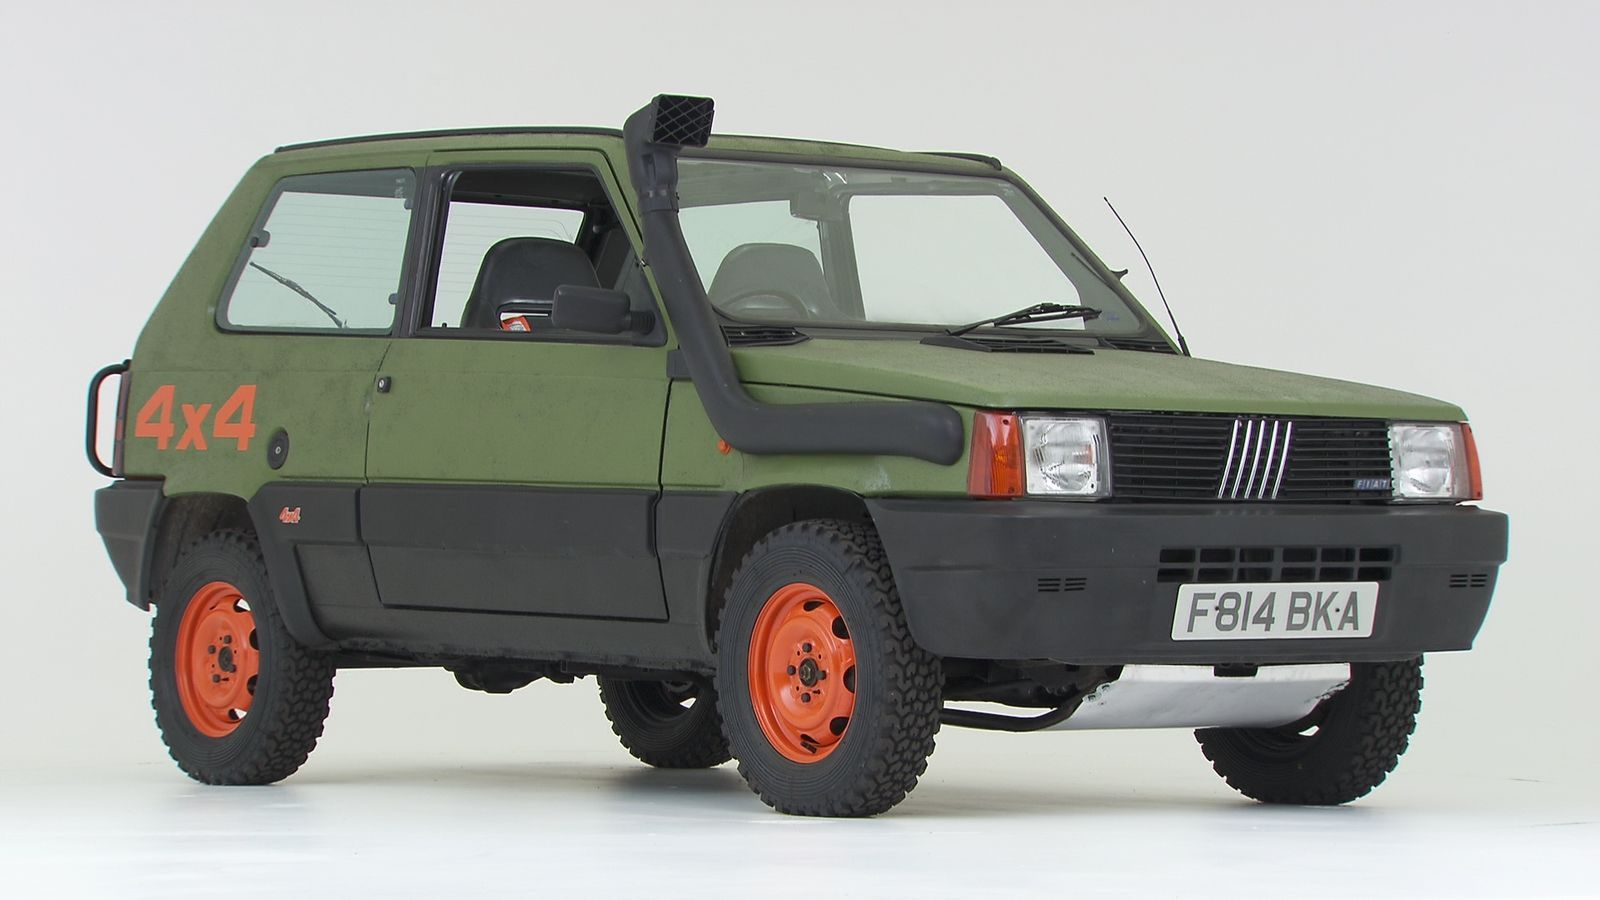 1989 Fiat Panda 4x4 to be featured on Wheeler Dealers   eBay